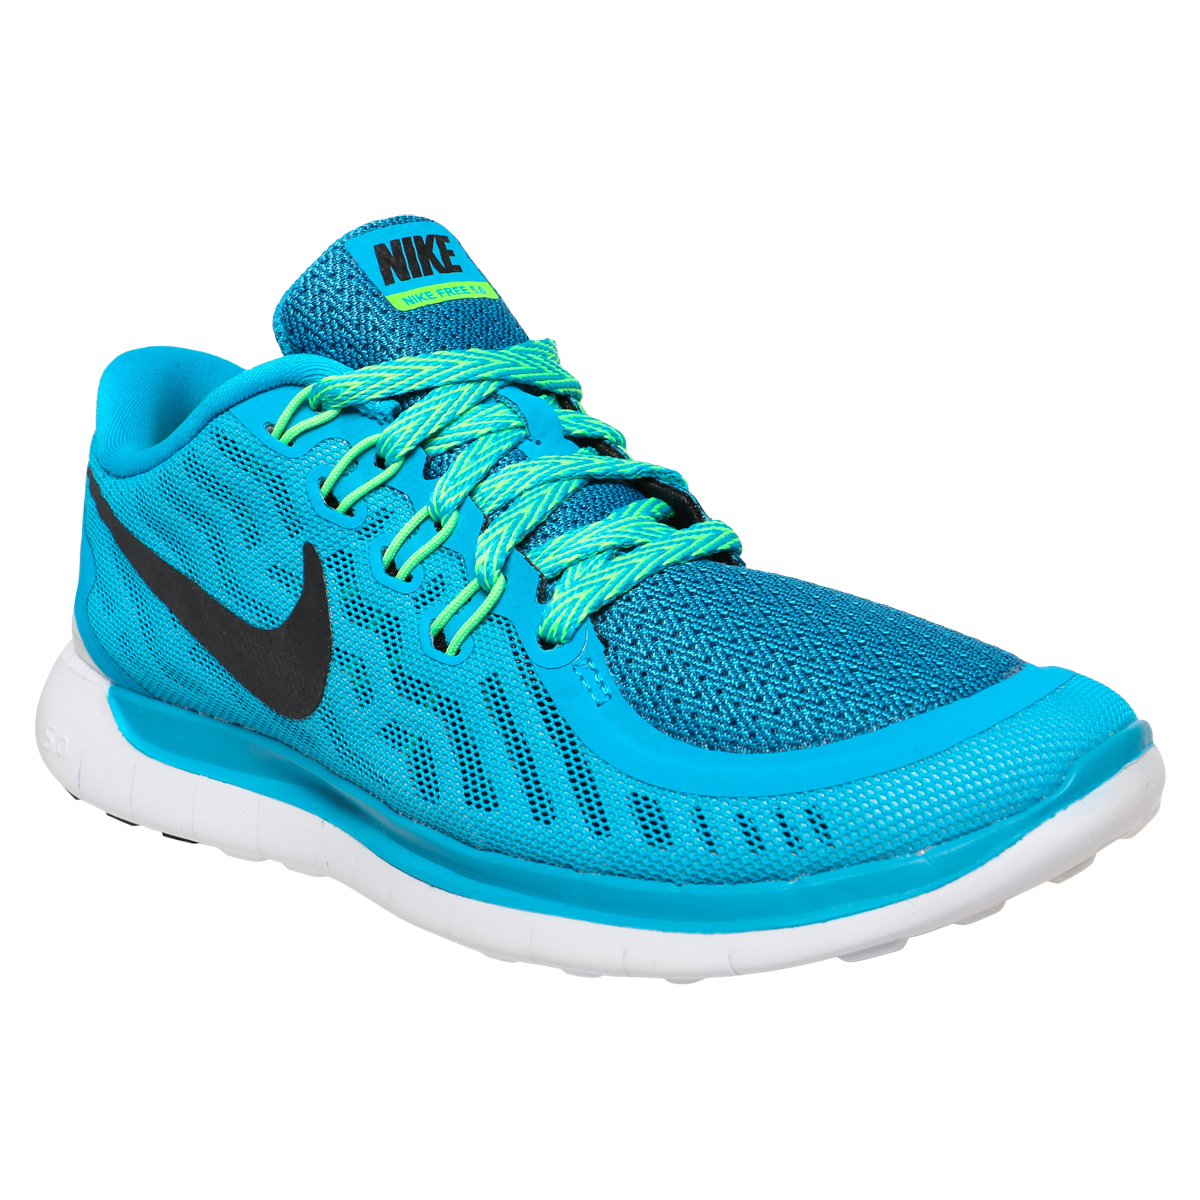 nike free 5 0 women 39 s training shoes blue lagoon volt green black. Black Bedroom Furniture Sets. Home Design Ideas